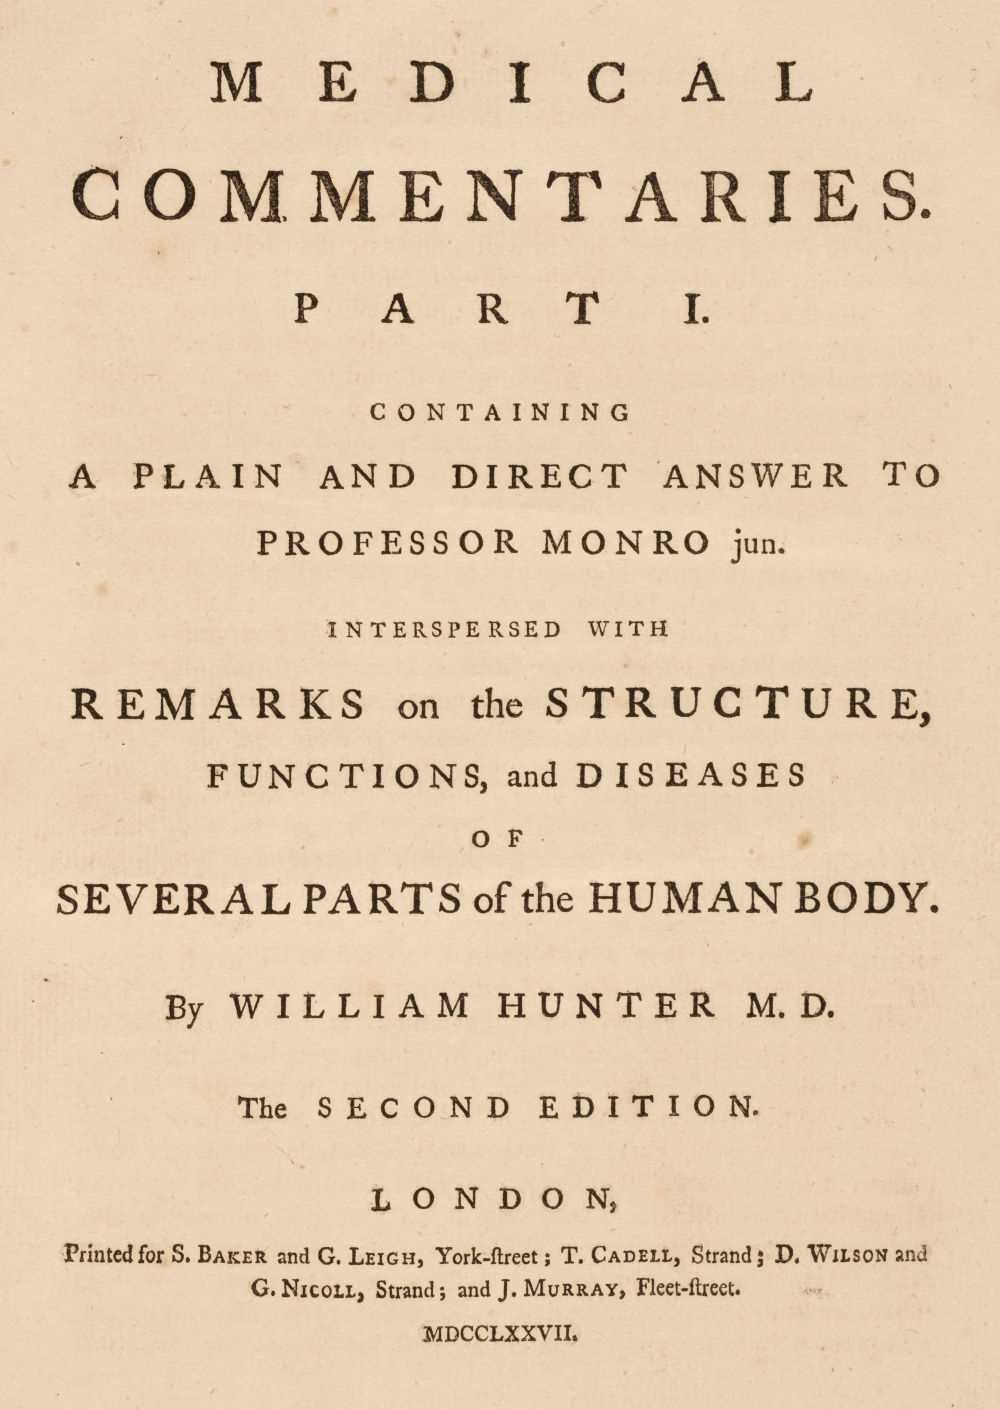 Lot 240 - Hunter (William). Medical Commentaries. Part I., 2nd edition, 1777